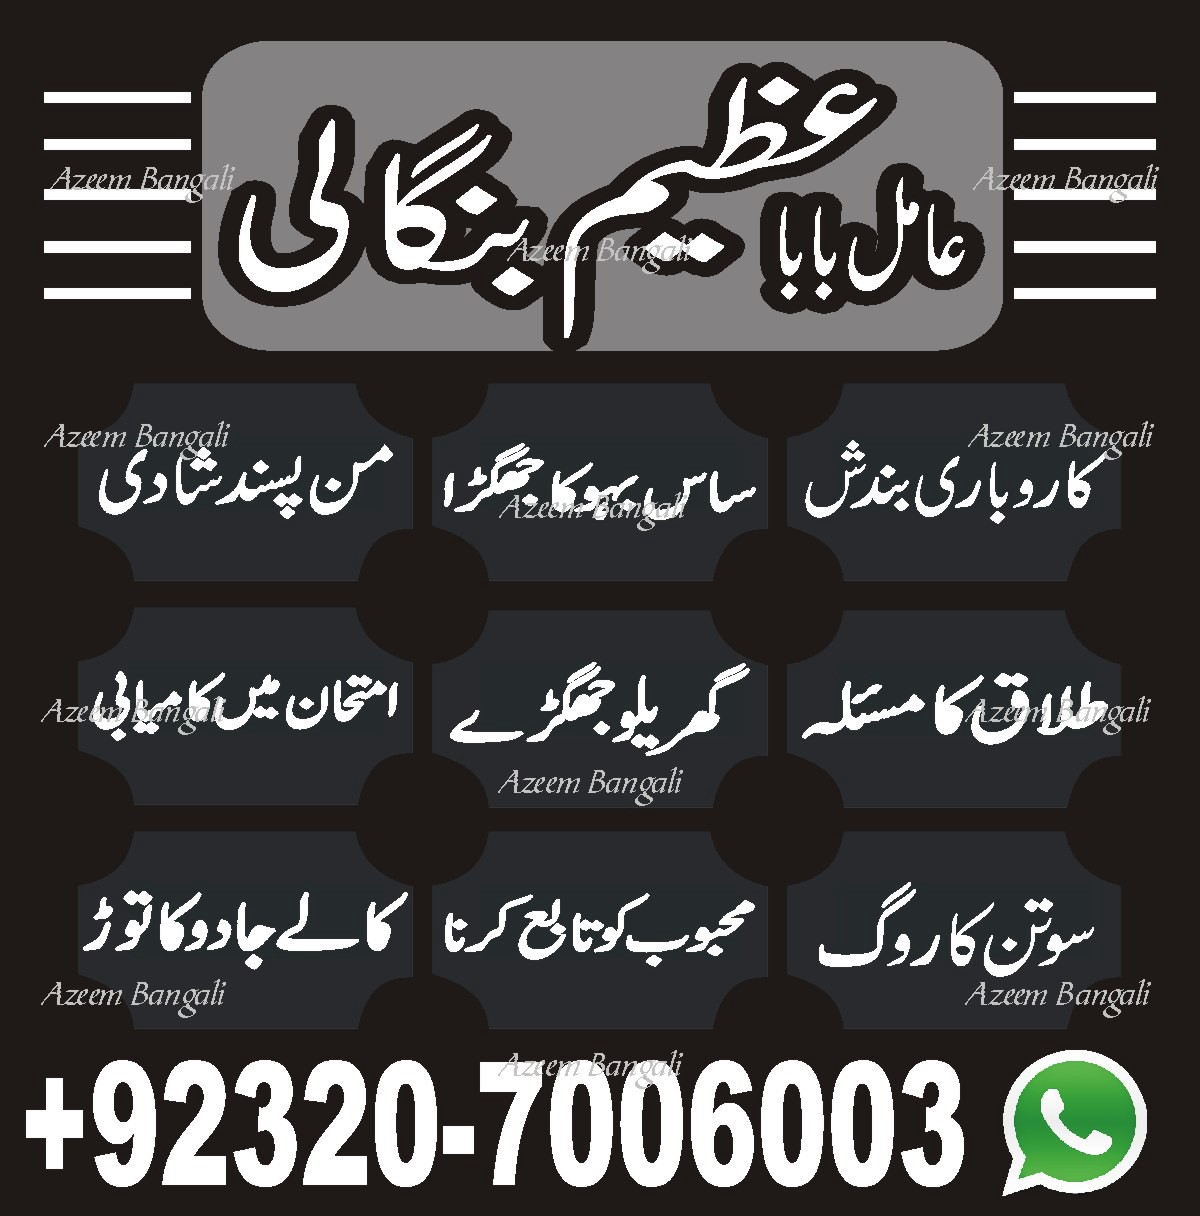 Amil baba contact number, Astrologer In DubaI +923207006003